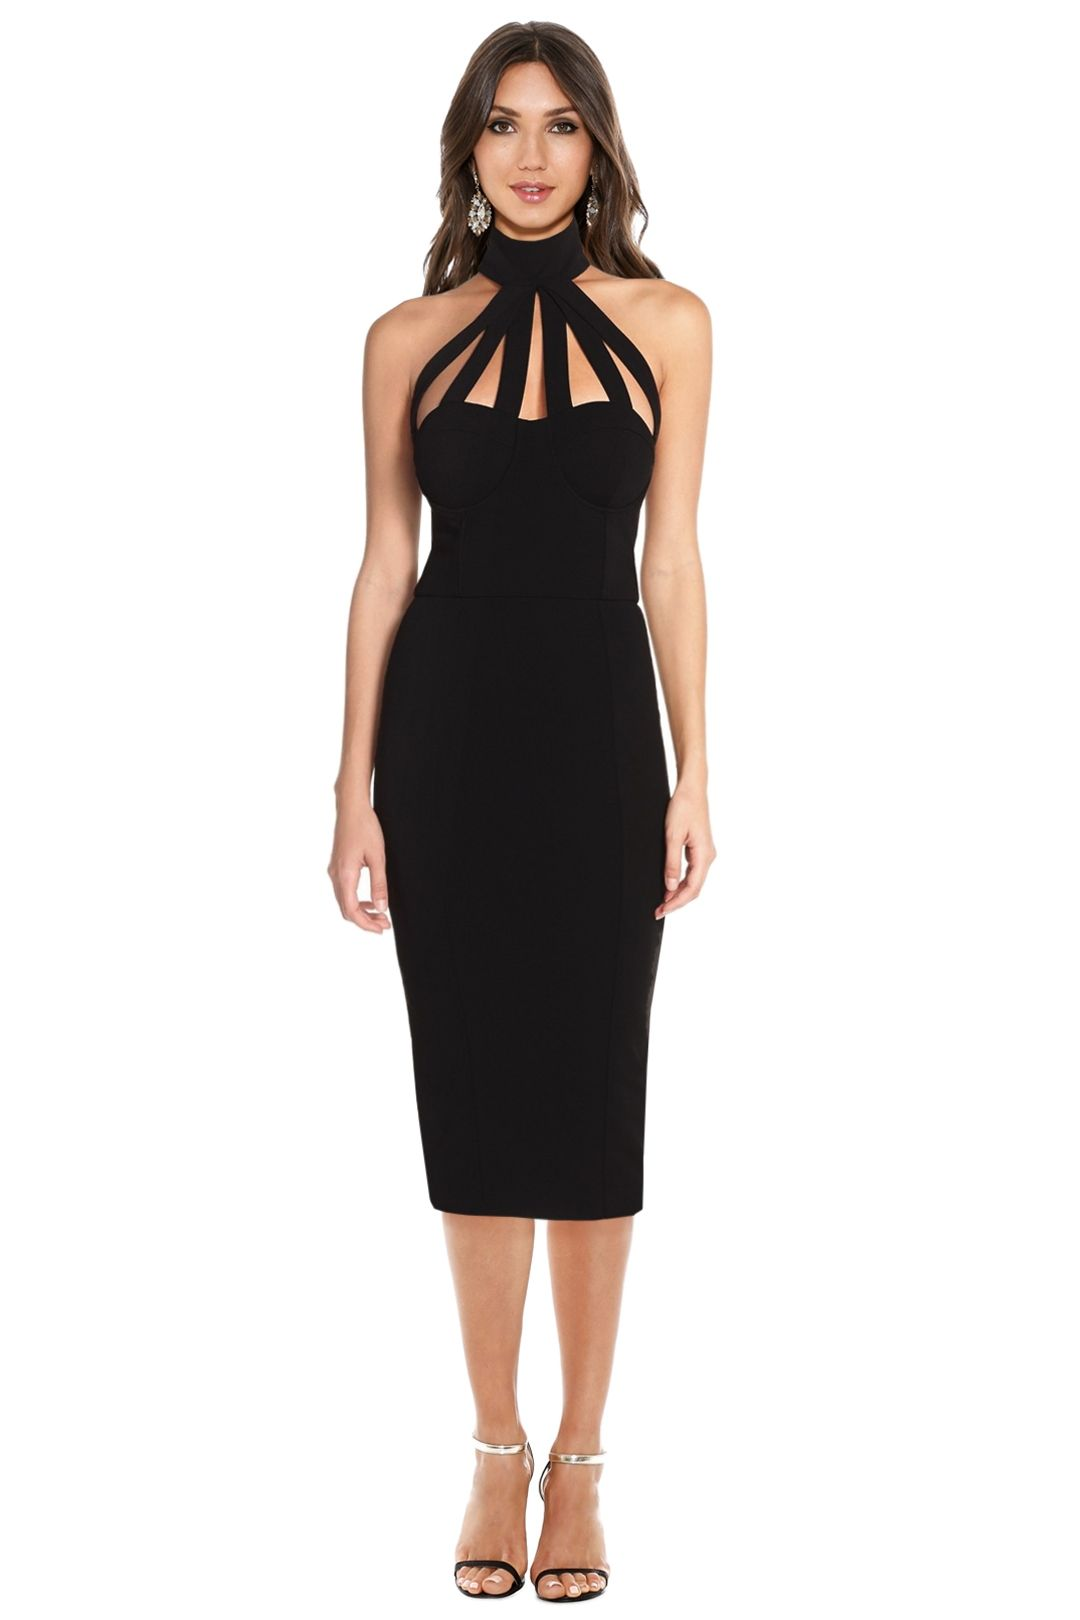 Misha Collection - Aliza Dress - Black - Front